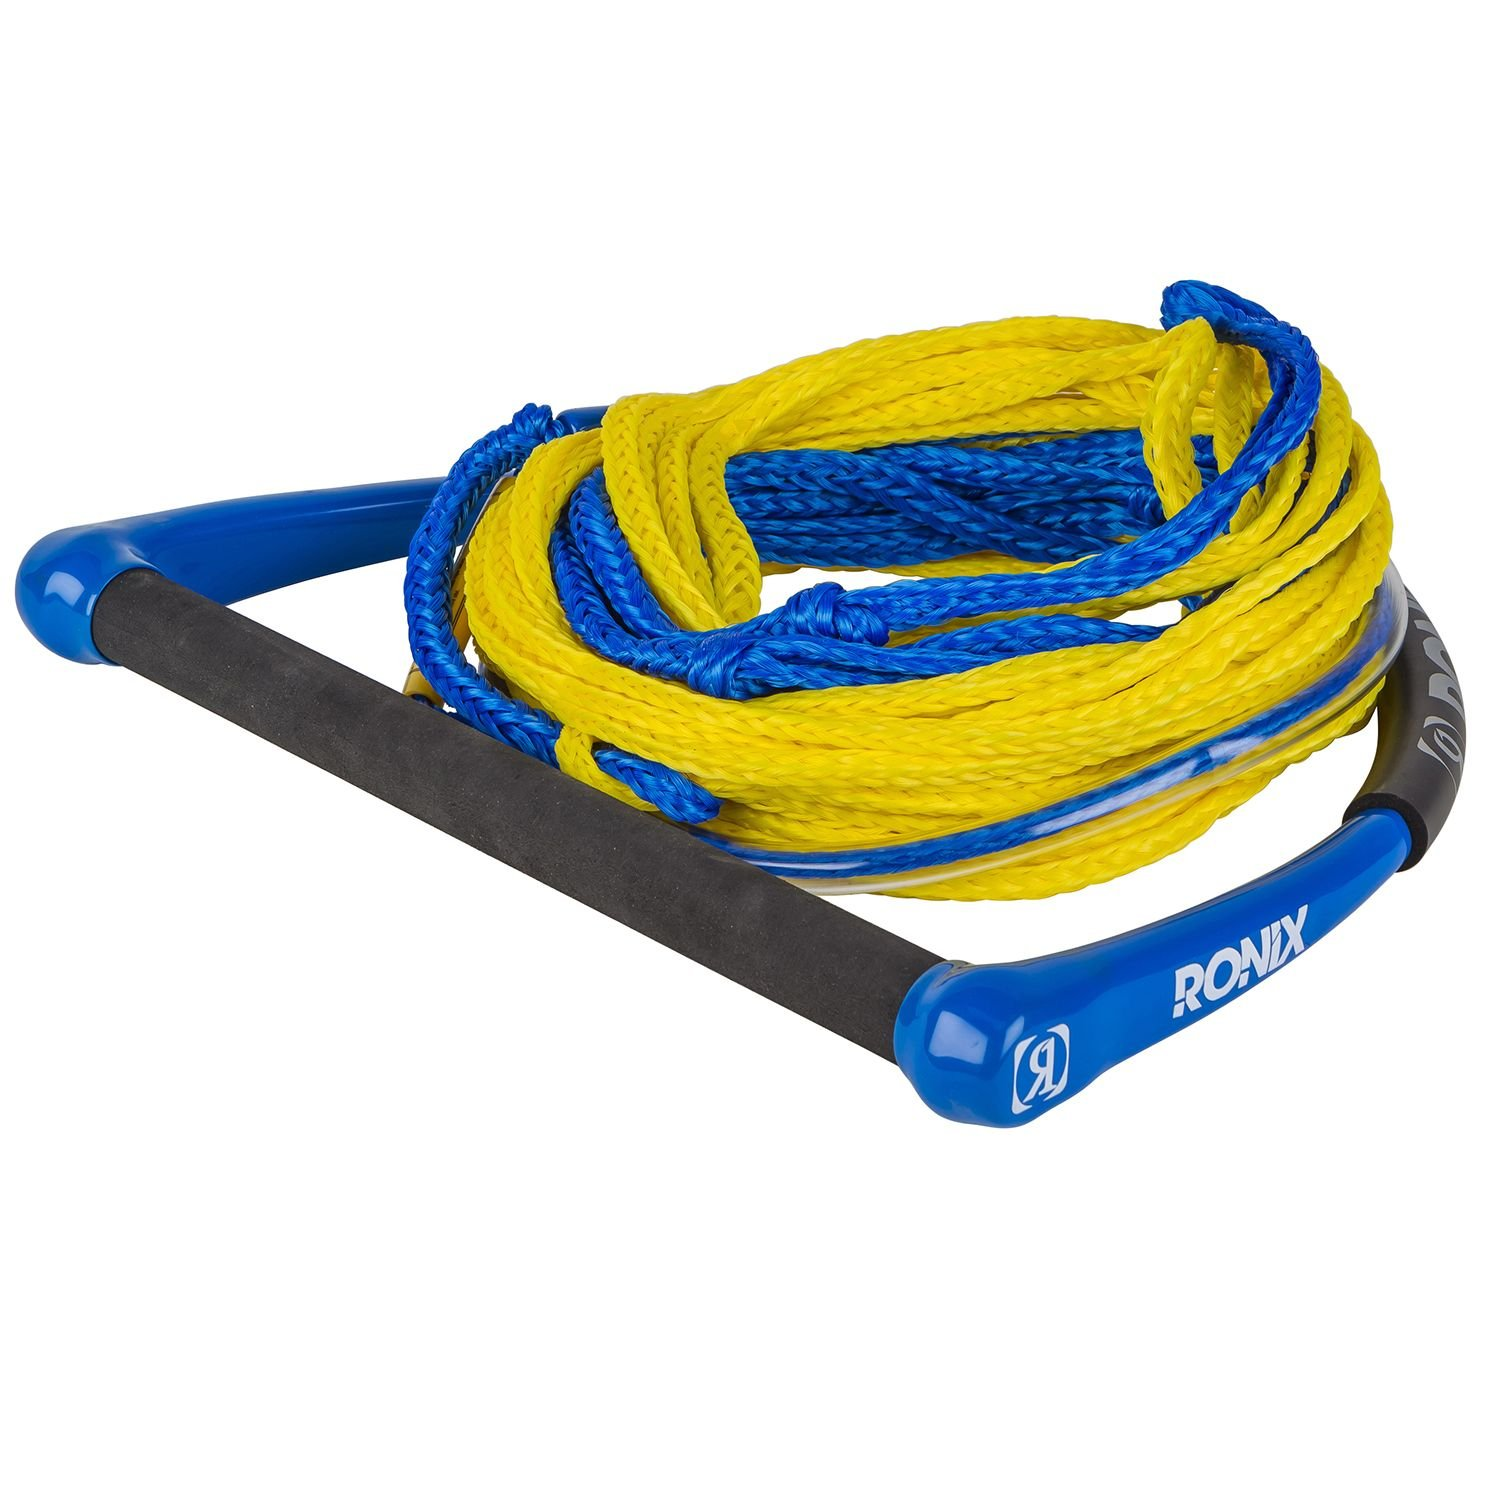 Ronix Combo 1.0 -TPR Grip w/ 65 ft 4 - Sect. PE Rope